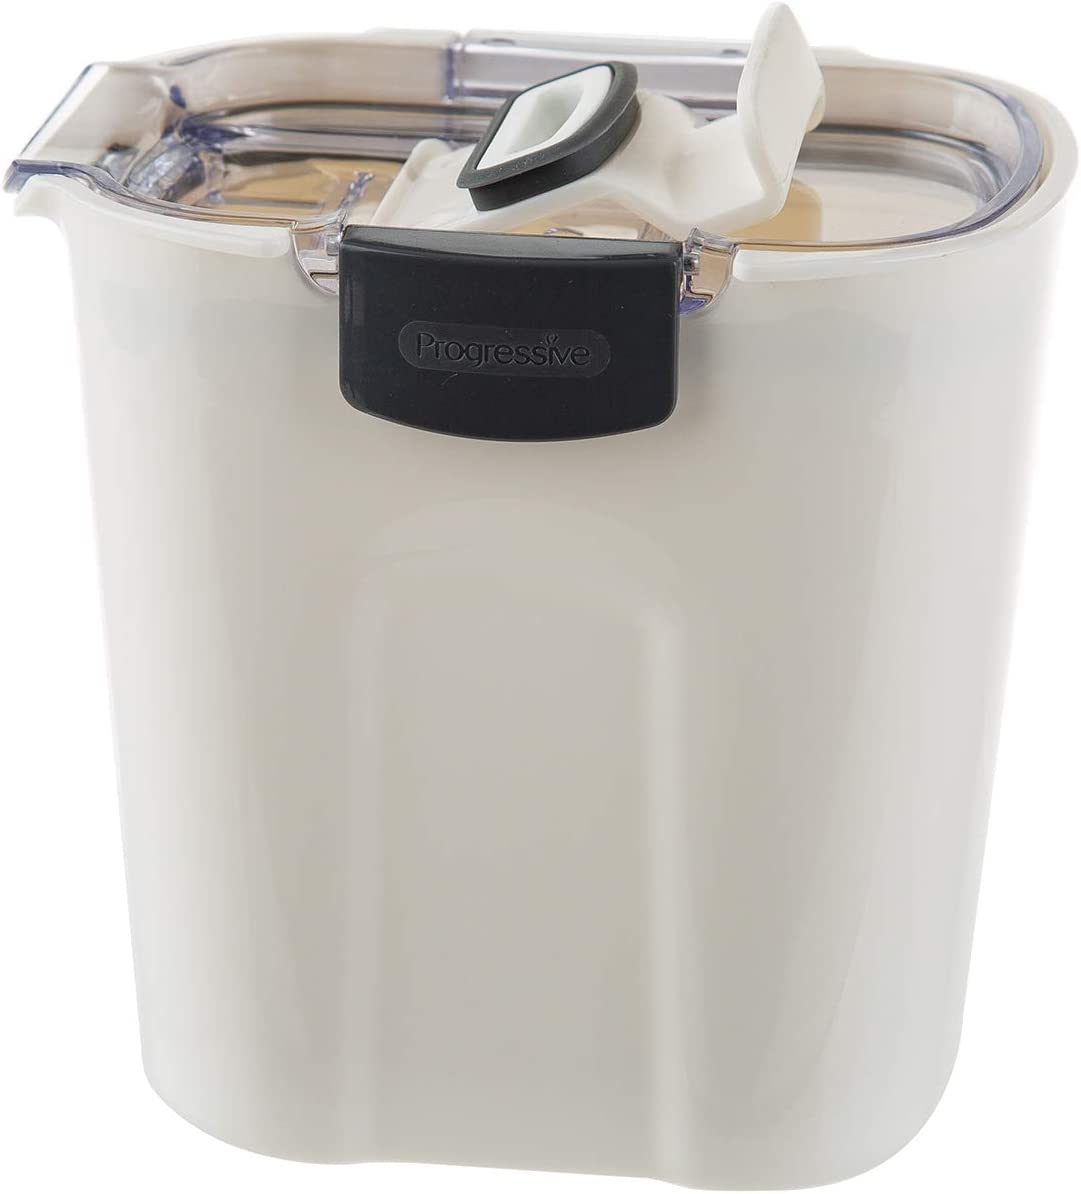 Prepworks by Progressive Store and Strain Deli ProKeeper PKS-720 Great for Storing Broth, Soups, Olives and Pickles Longer in Refrigerator